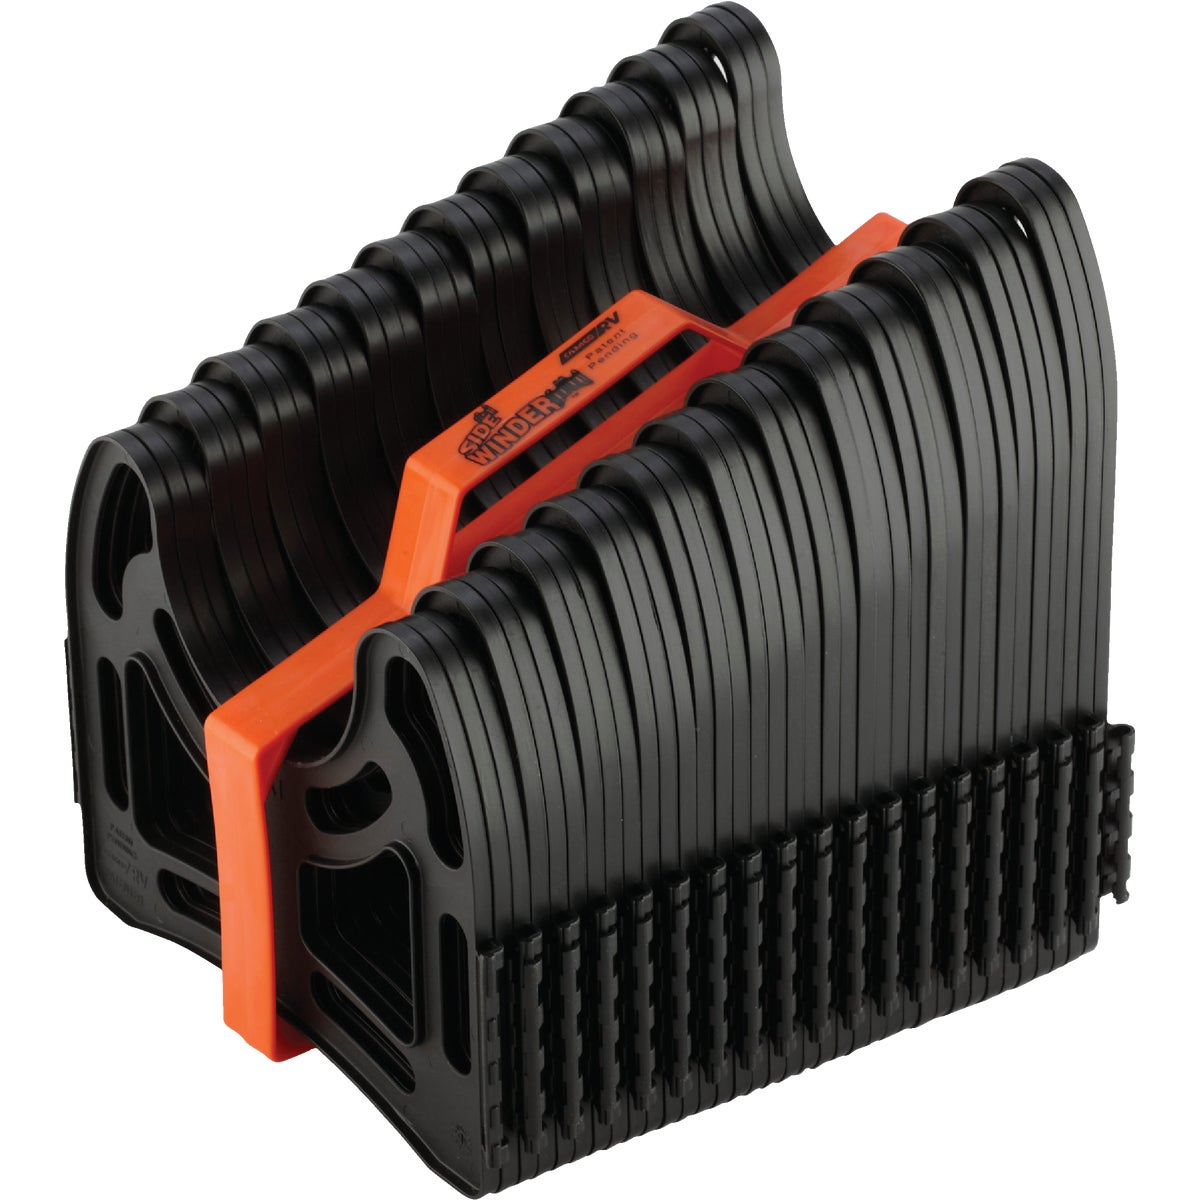 15' SEWER HOSE SUPPORT